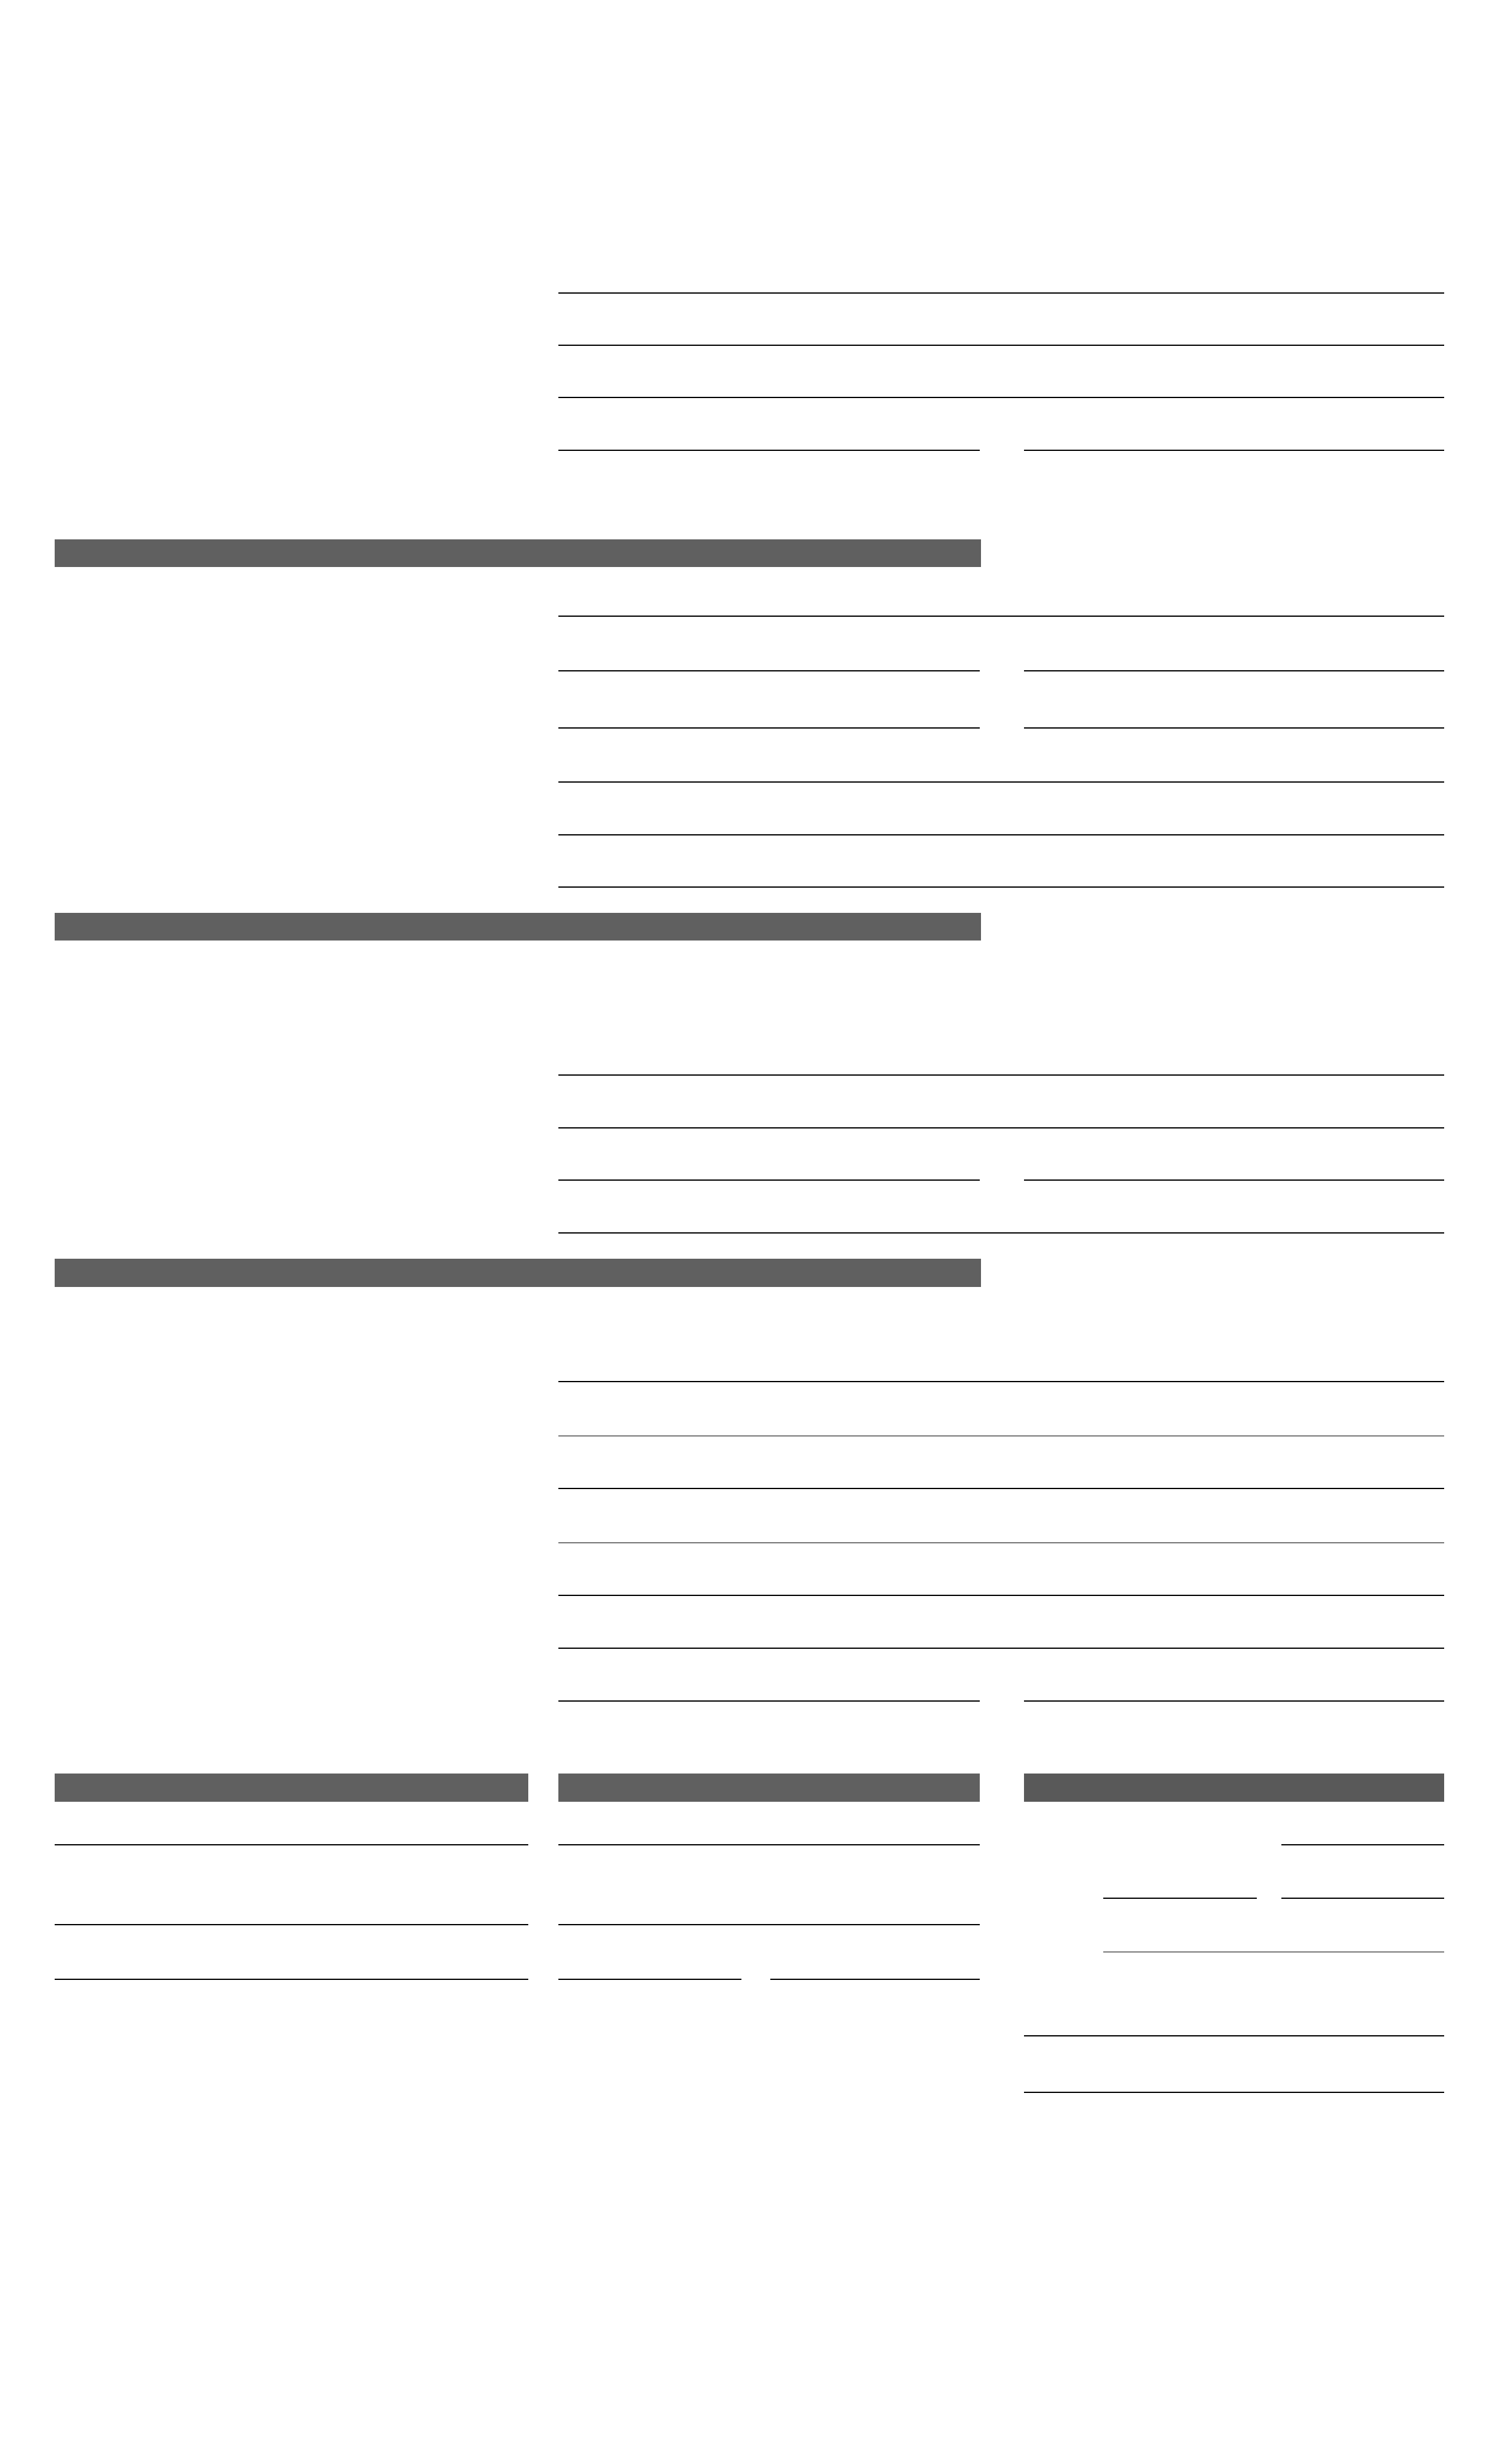 Child Travel Consent Form Template Free Download – Free Child Travel Consent Form Template